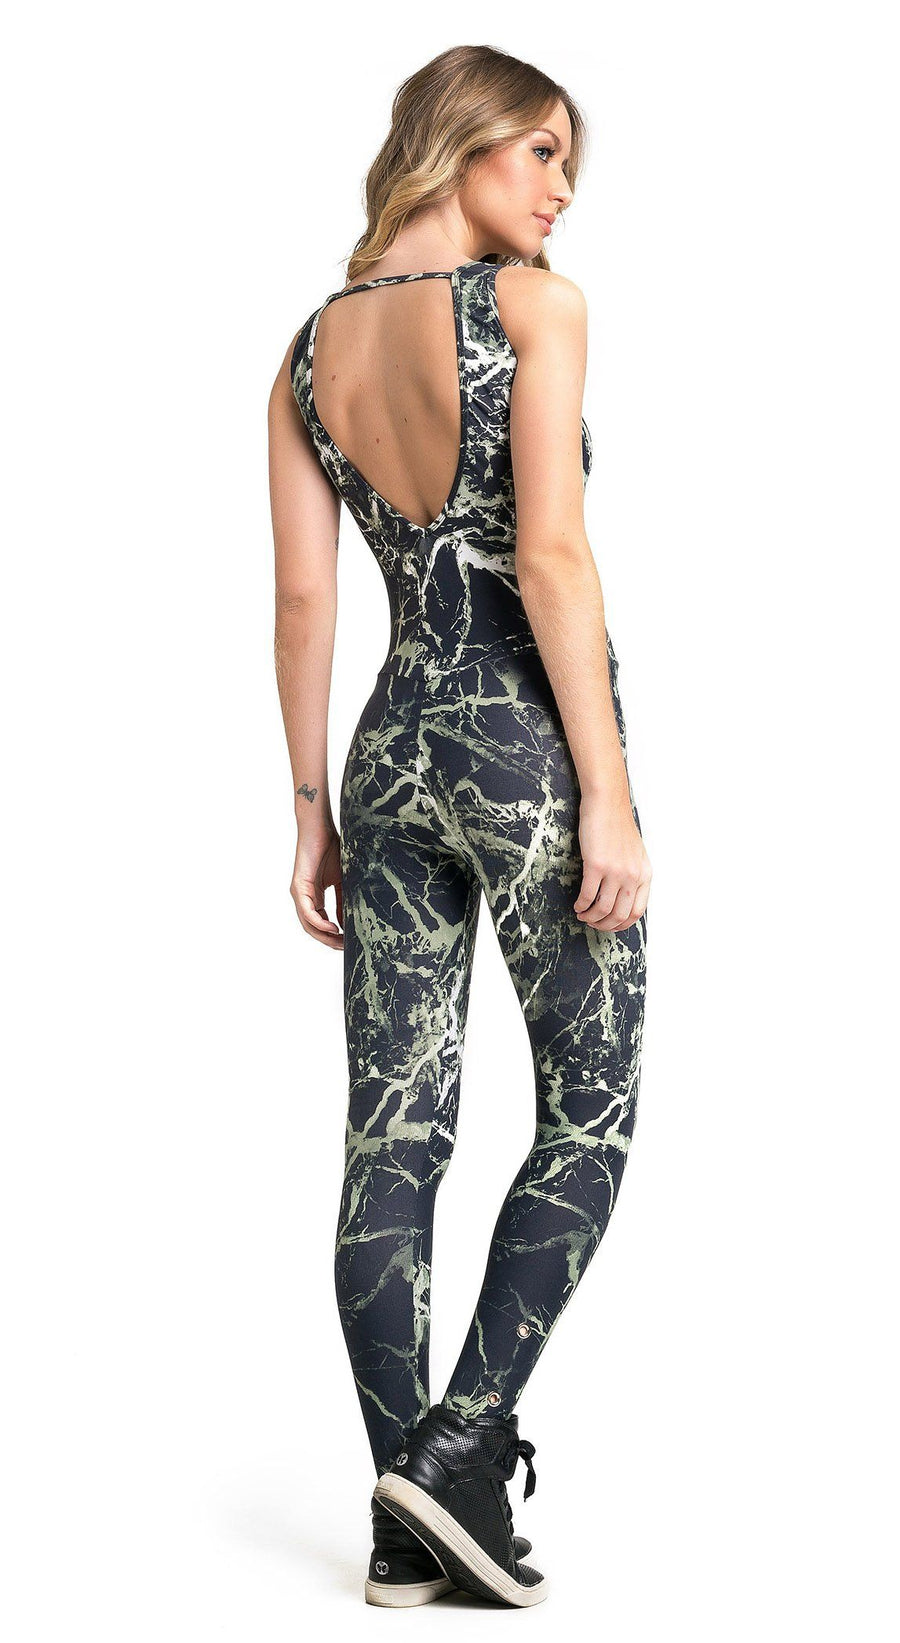 Brazilian Workout Jumpsuit - Diva Army Printed Catsuit